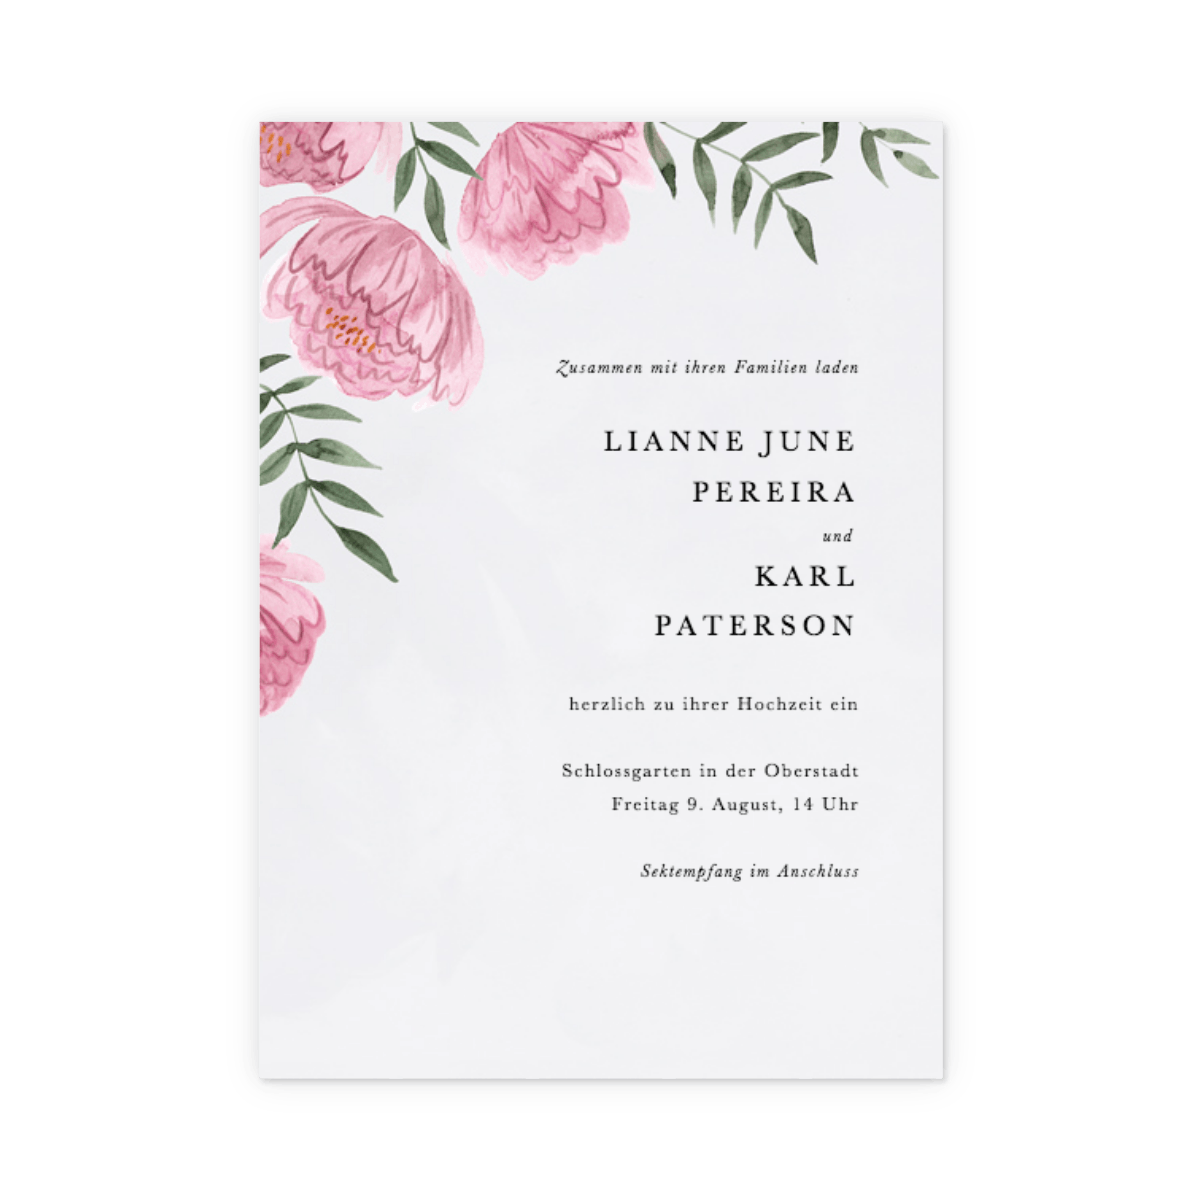 Https%3a%2f%2fwww.papier.com%2fproduct image%2f65528%2f4%2fdusky peonies 14859 vorderseite 1553681415.png?ixlib=rb 1.1